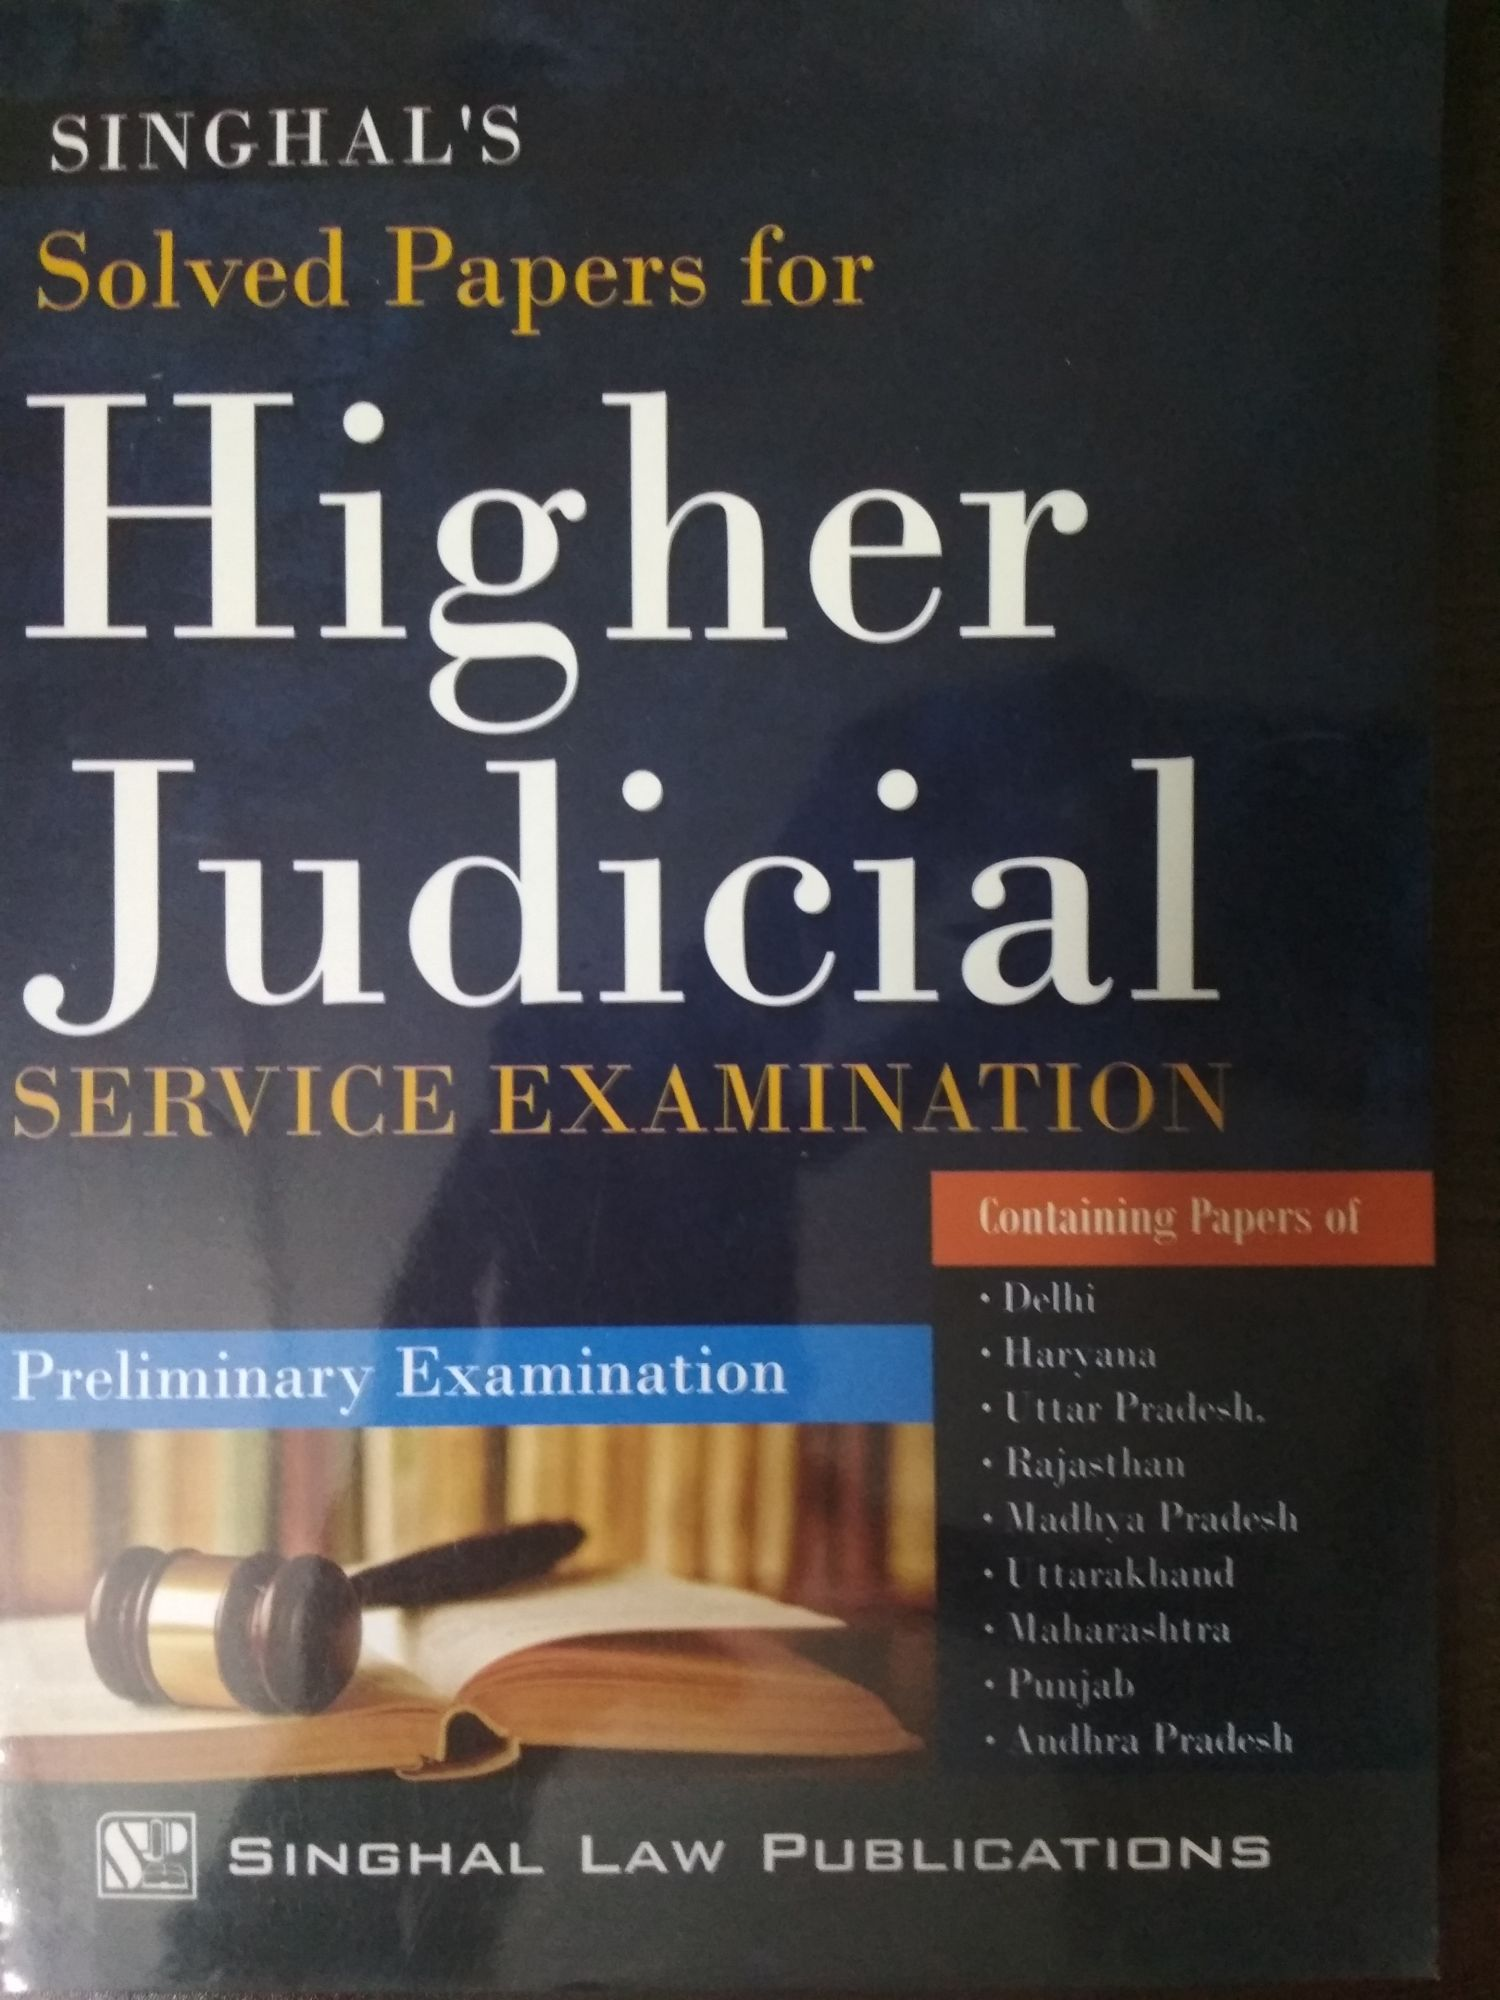 Singhal Solved Papers For Higher Judicial Service Examination Preliminary Examination